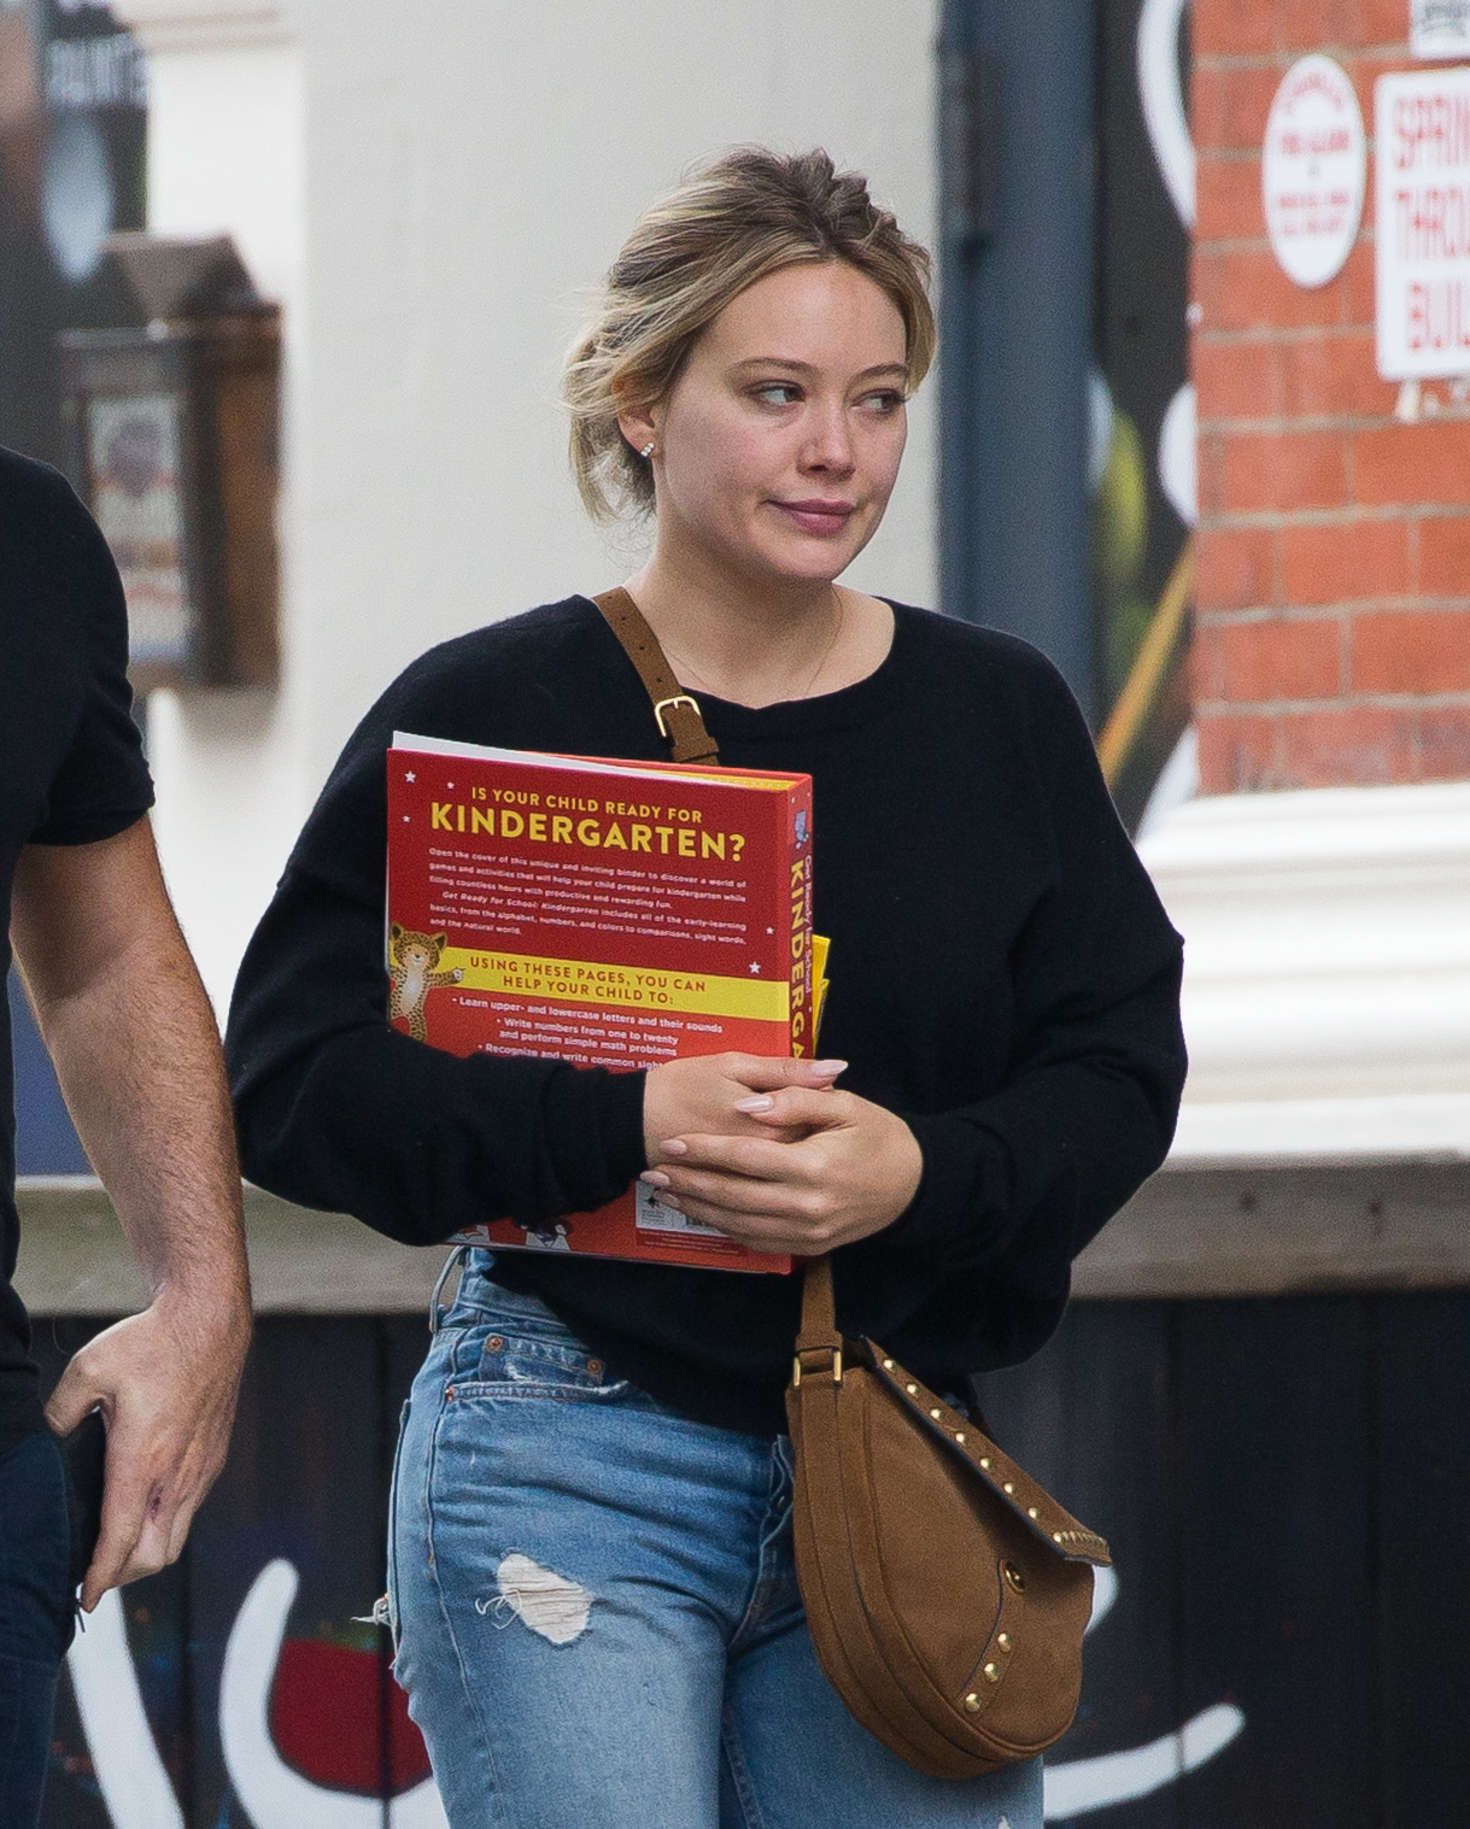 hilary duff and her exhusband mike comrie 17 gotceleb